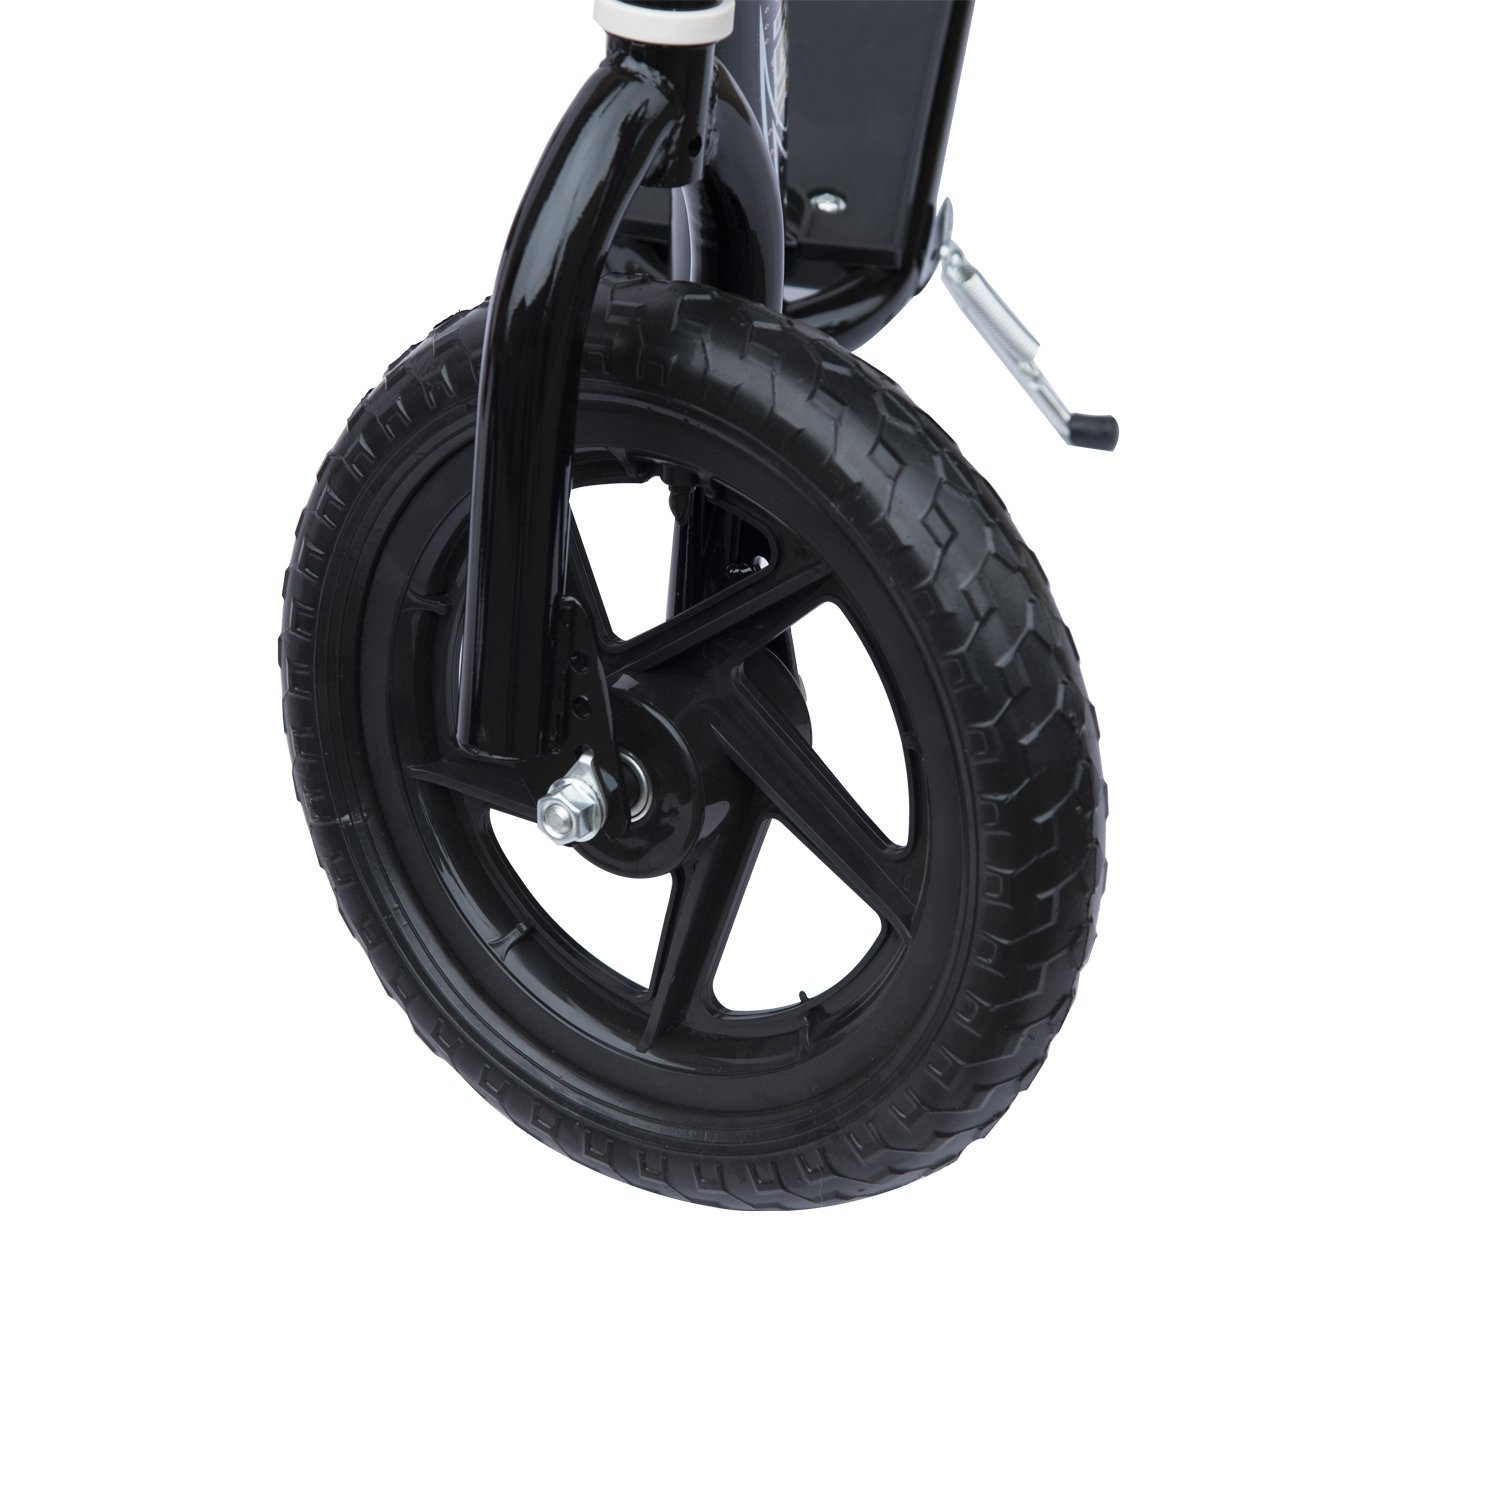 Teen-Push-Scooter-Kids-Children-Stunt-Scooter-Bike-Bicycle-Ride-On-12-034-Tyres-New thumbnail 8